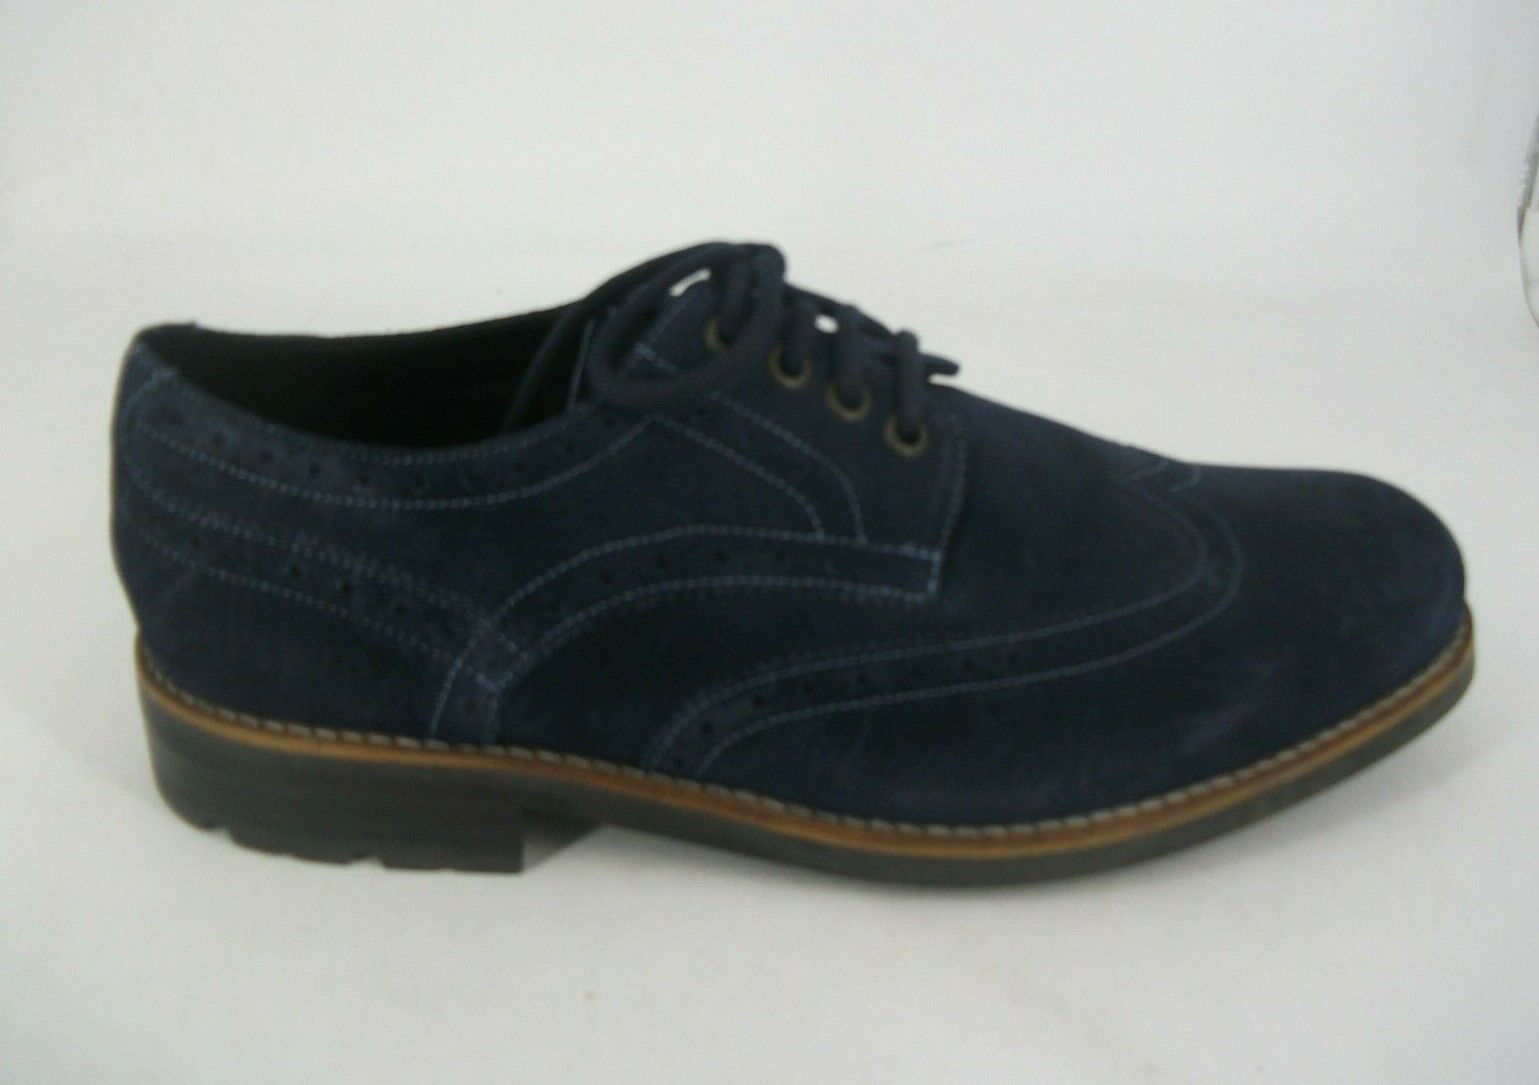 Autograph Navy Suede Lace Up Brogues UK 8 EU 42 JS094 CC 02